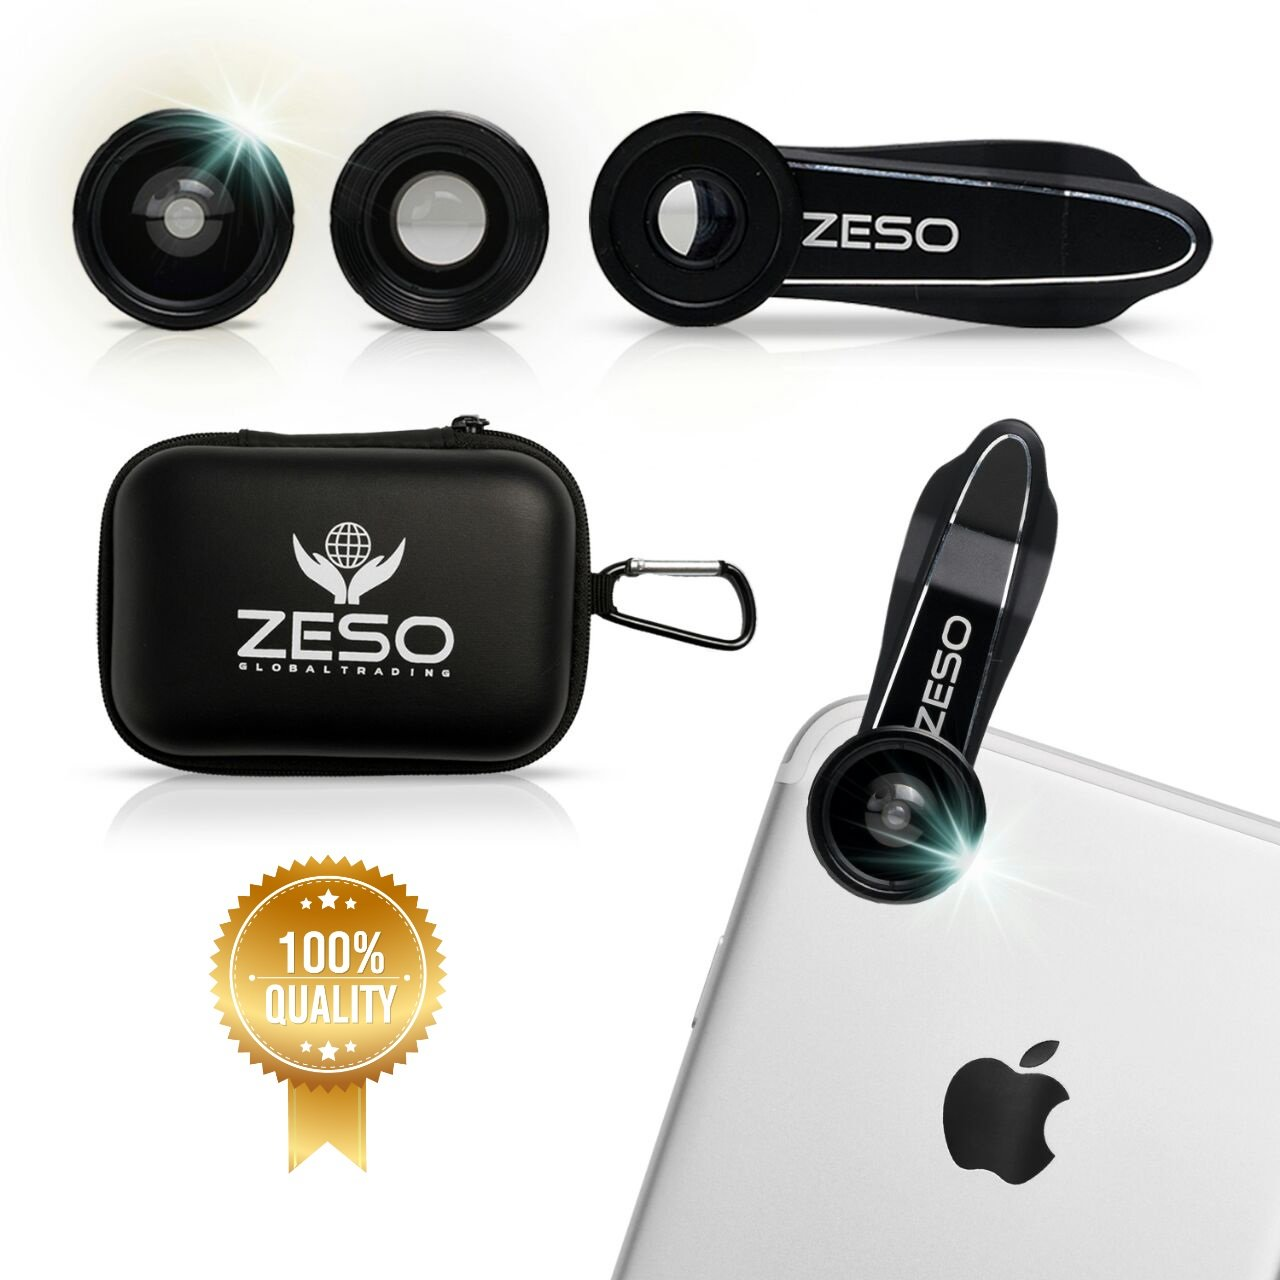 phone Lens 3 In 1 Camera Lens Kit by Zeso | Professional 230° Fisheye, Macro & Wide Angle Phone Lenses | For iPhone, Samsung Galaxy, Android, iPads, Tablets | Hard Storage Case & Universal Phone Clip by Zeso lens